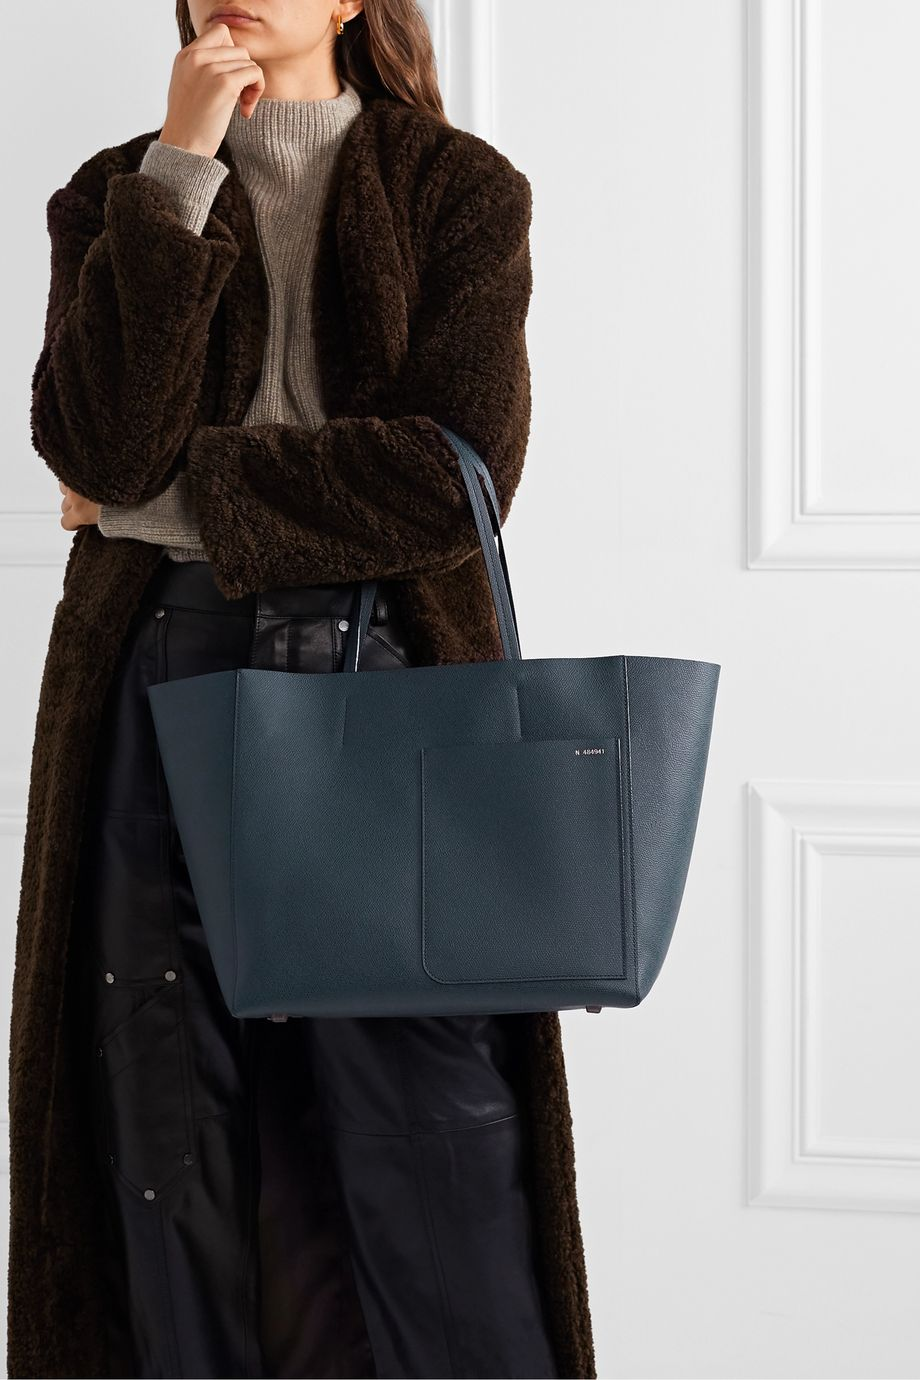 Valextra Shopping textured-leather tote